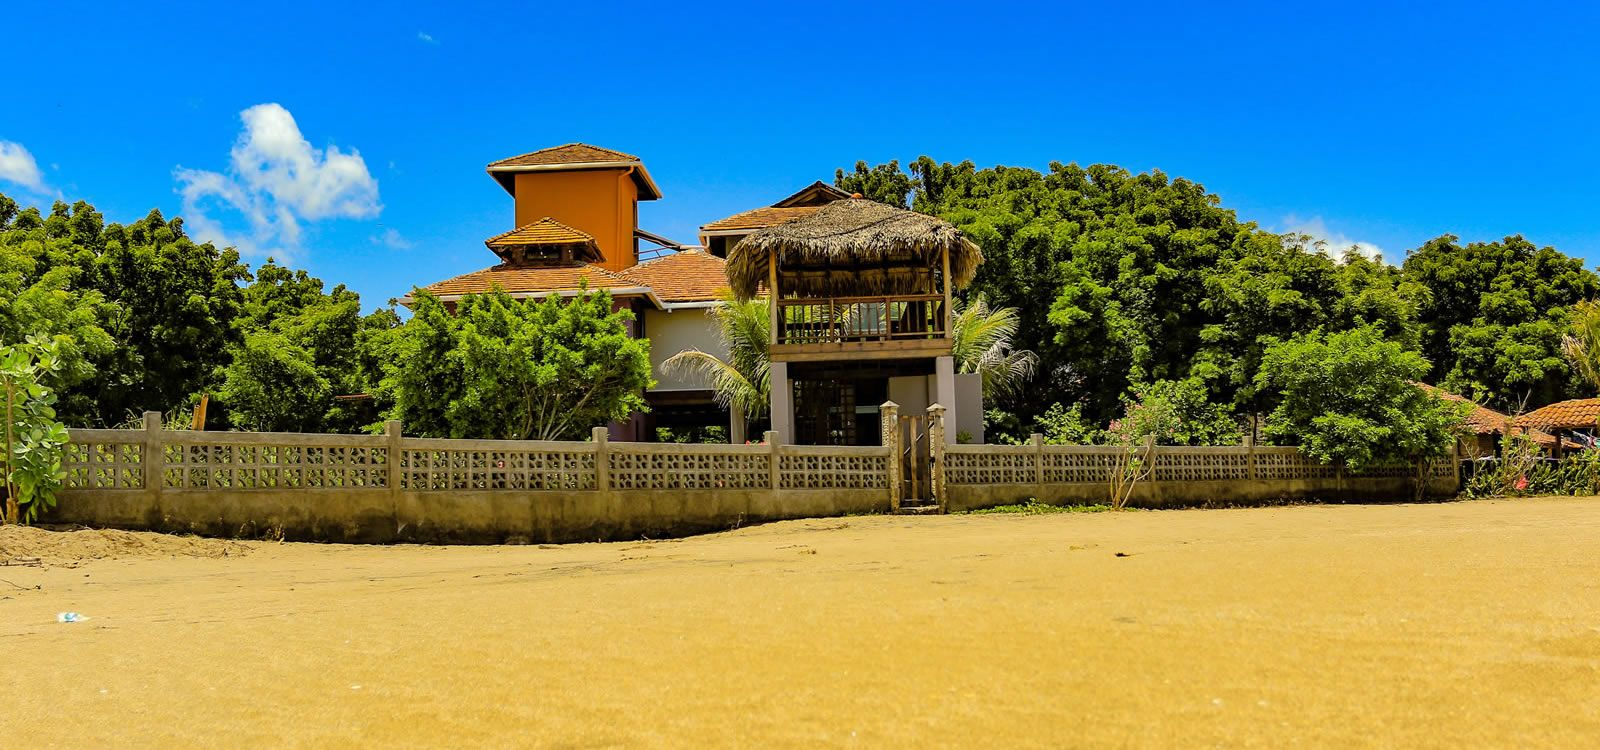 4 Bedroom Beachfront Property For Sale Located On The Unspoiled Beach Of Playa Hermosa In Huehuete On Nicaragu Beachfront Property Property For Sale Beachfront